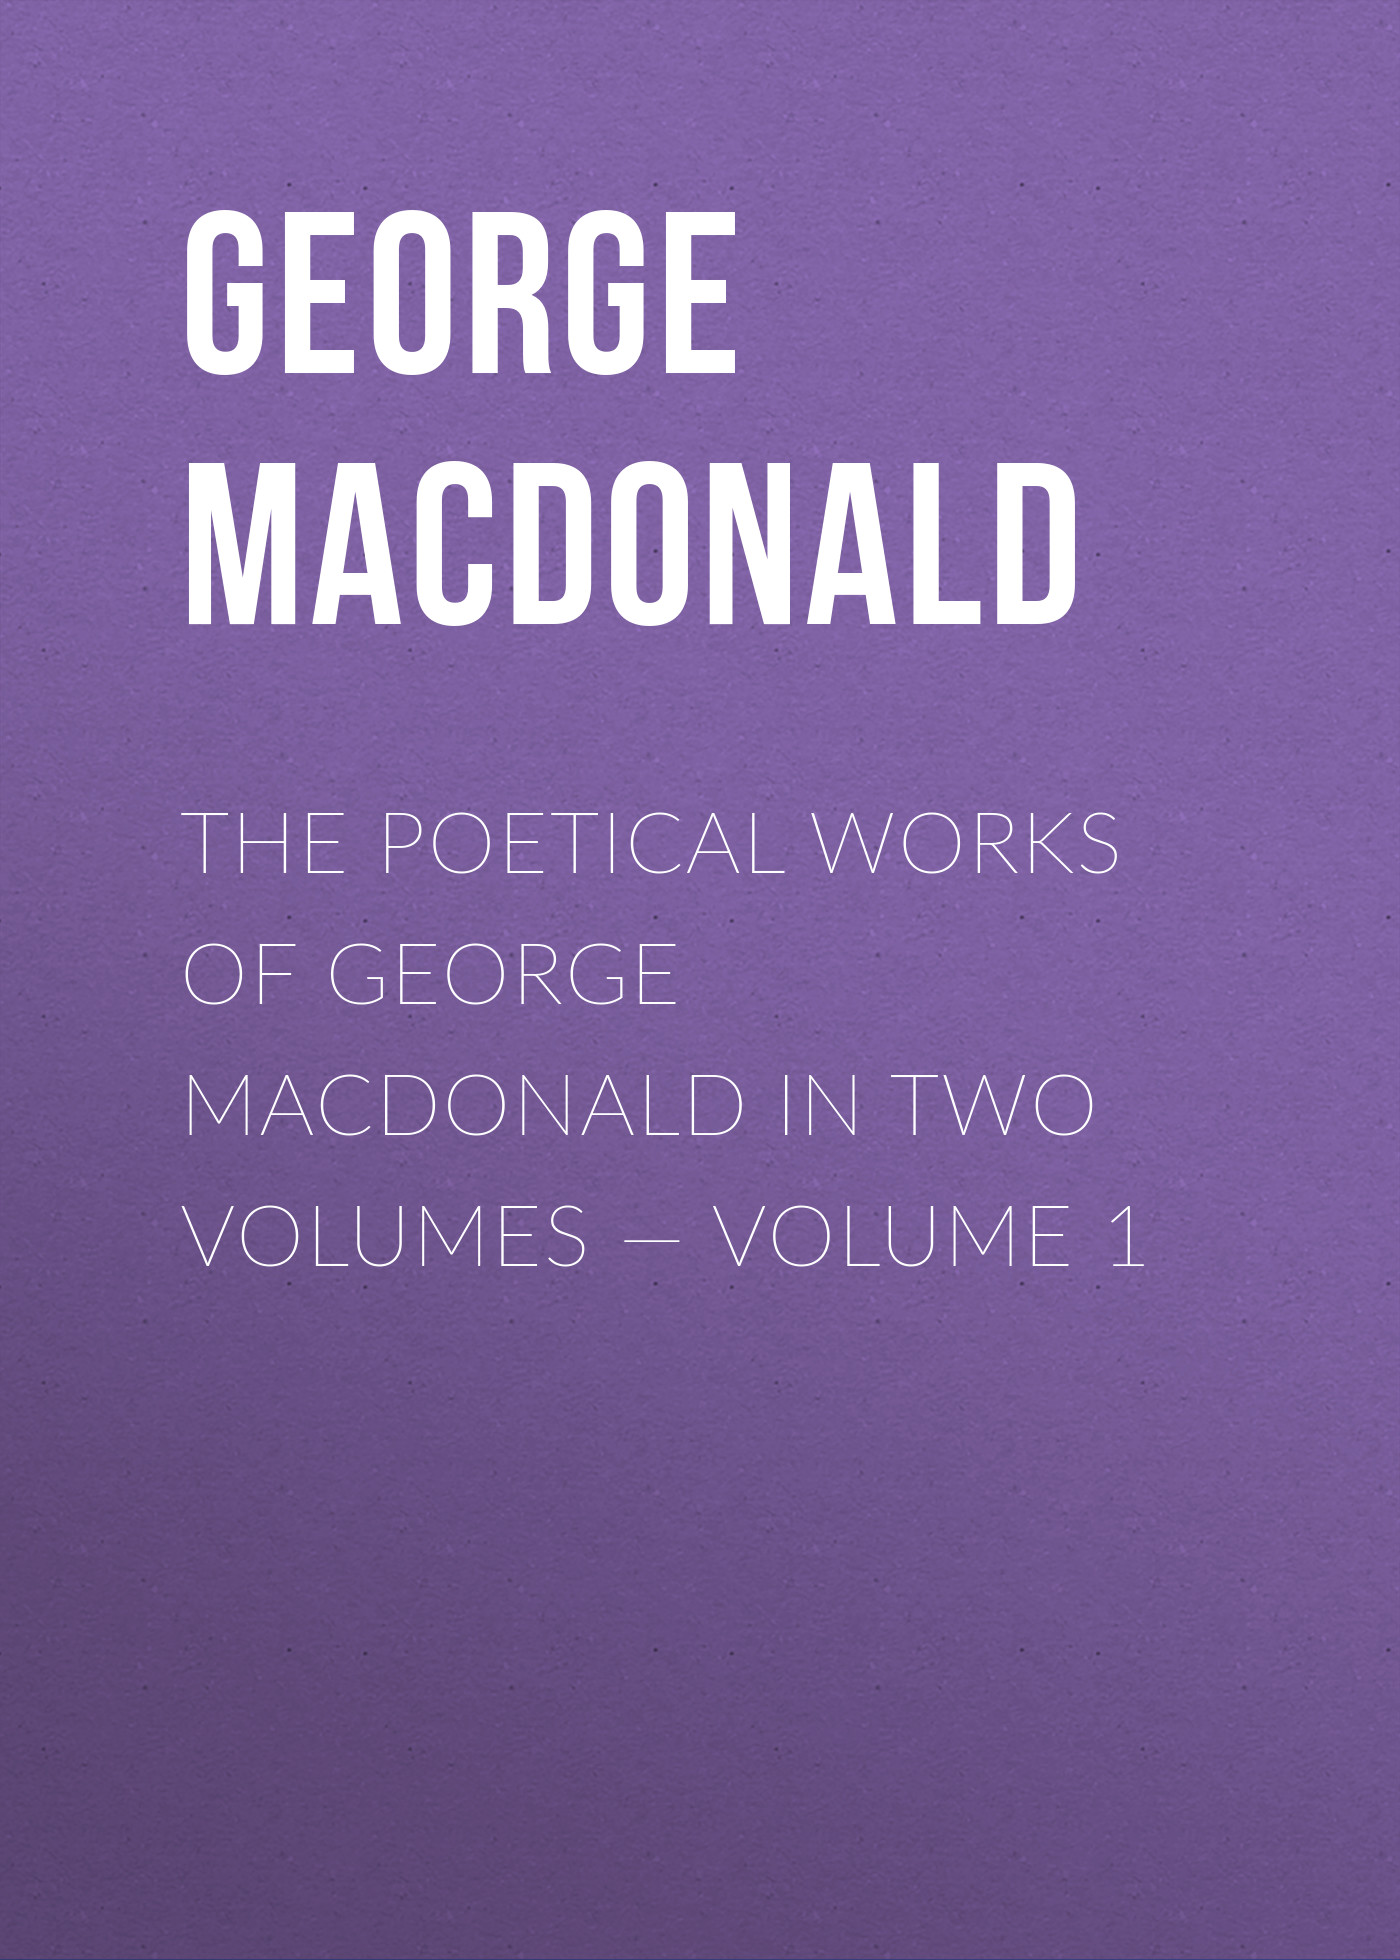 все цены на George MacDonald The poetical works of George MacDonald in two volumes — Volume 1 онлайн